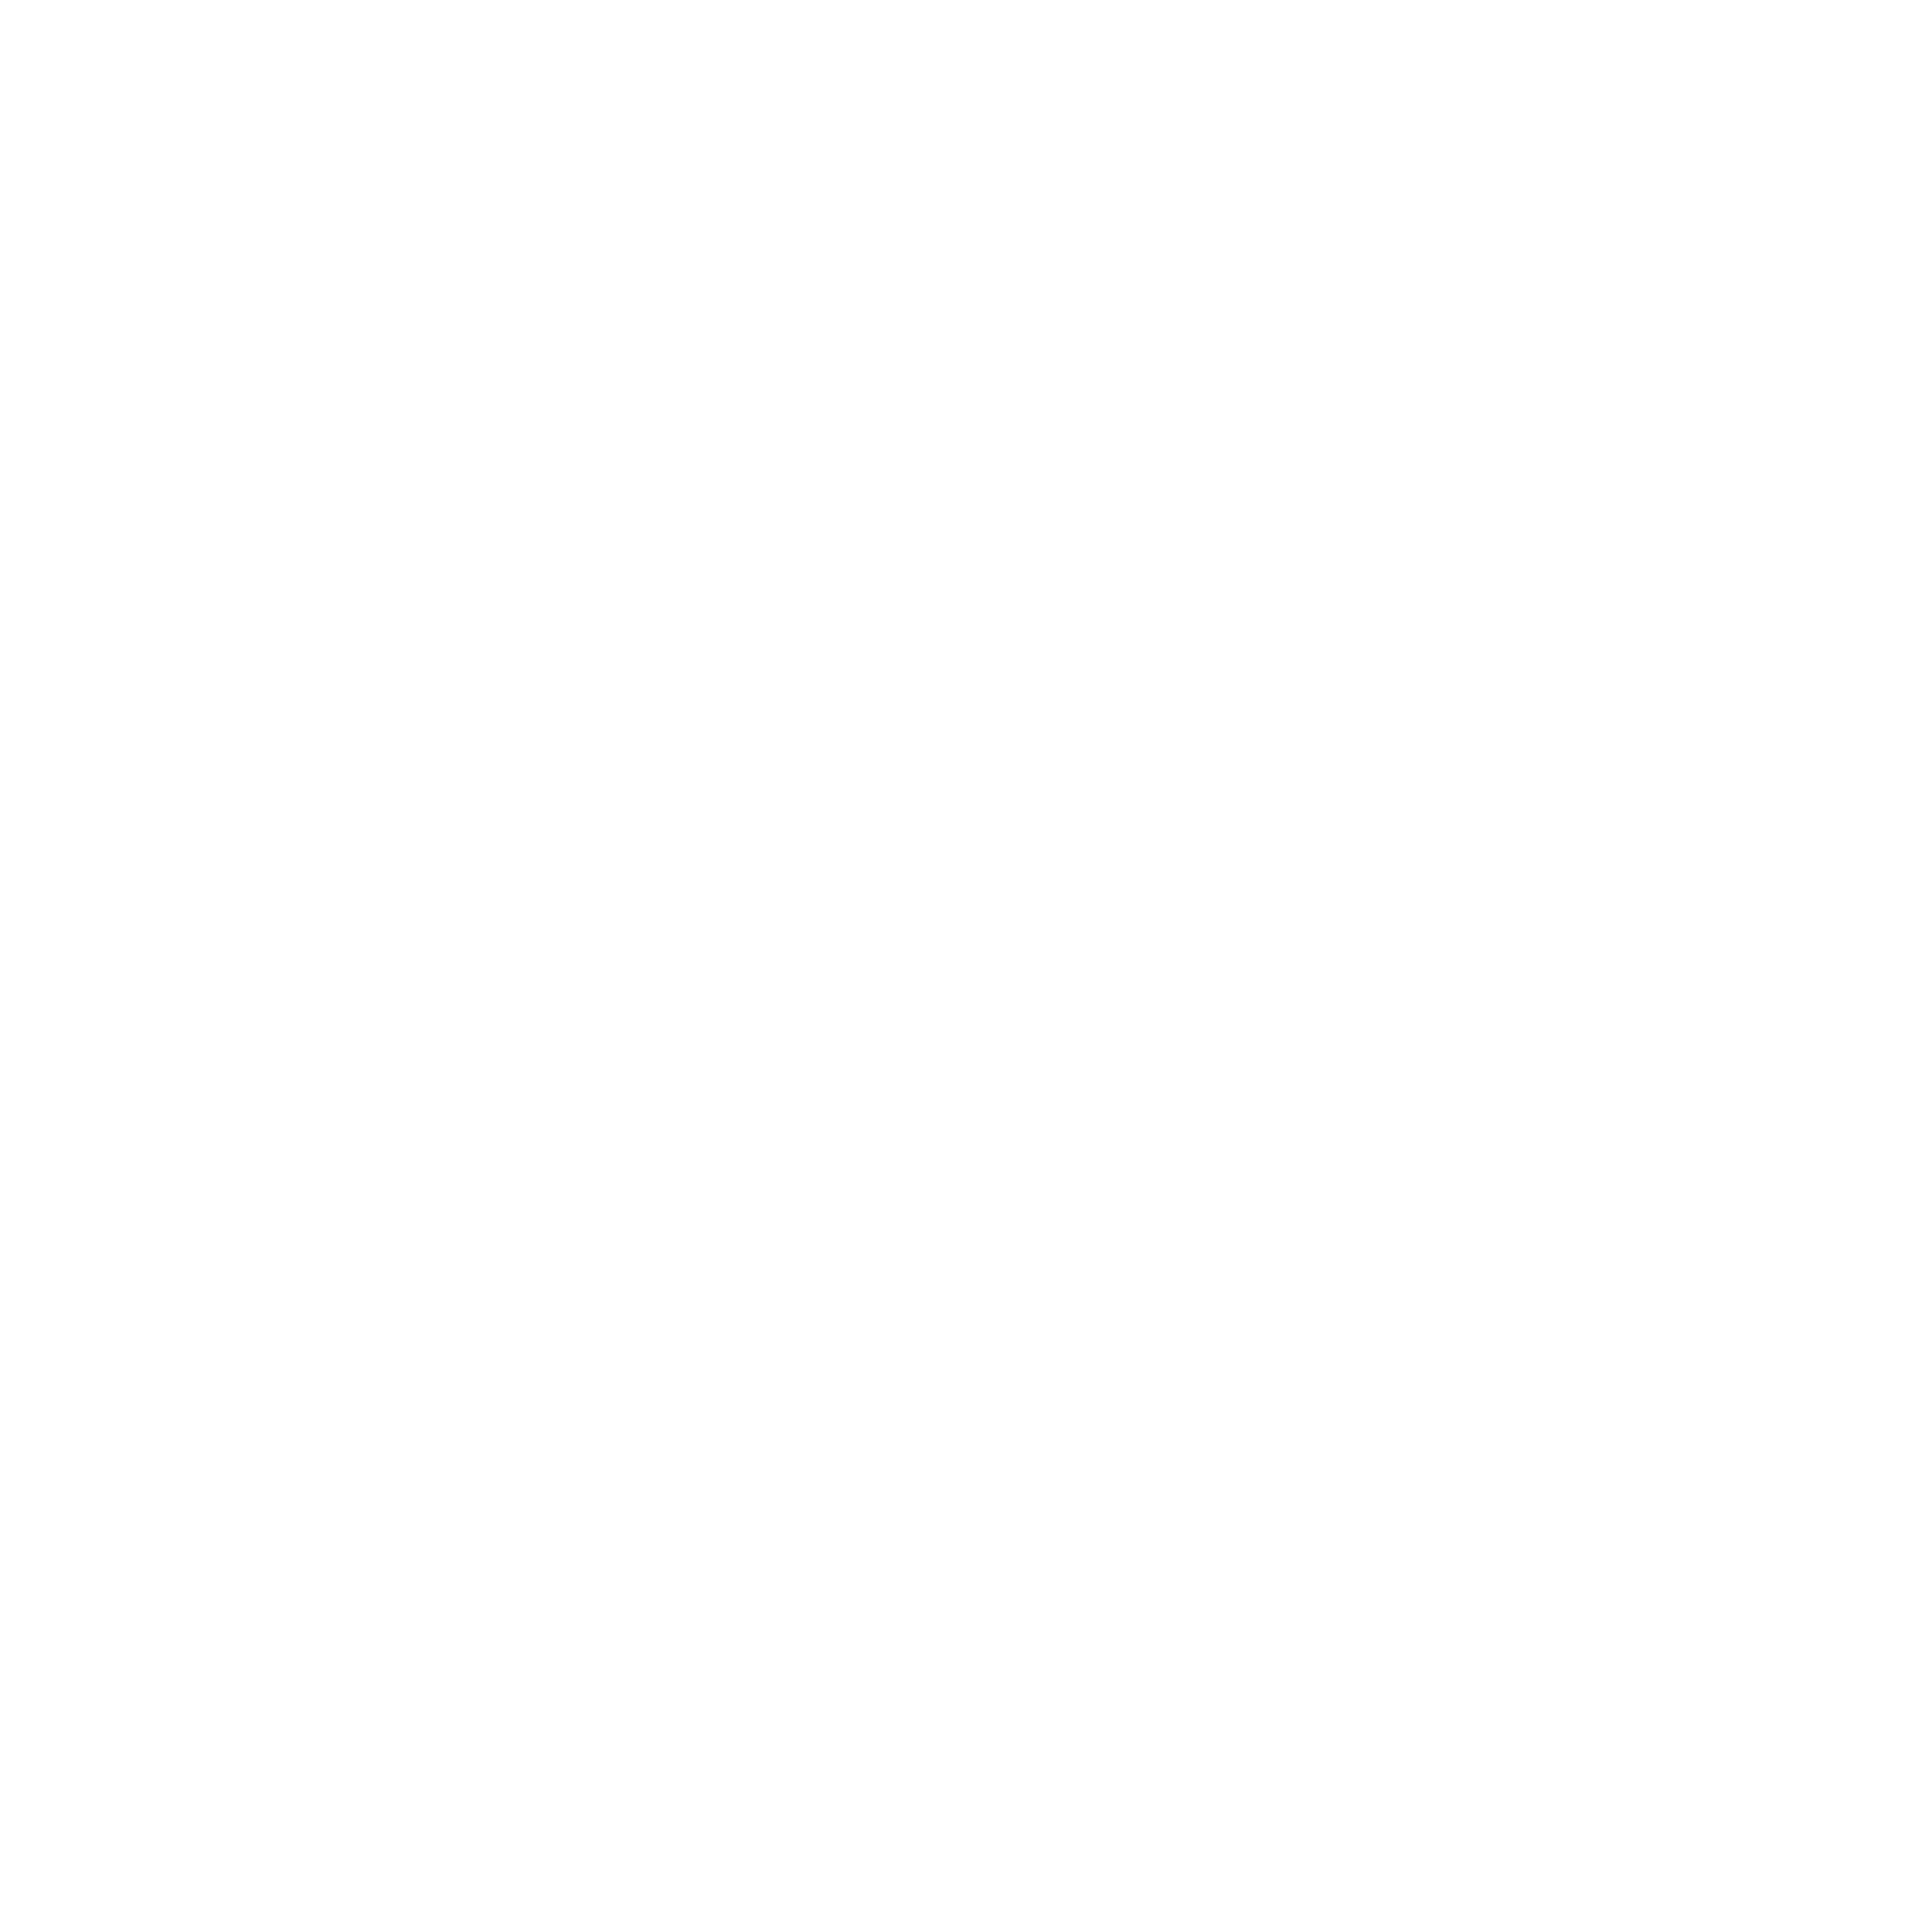 Just mine cosmetic